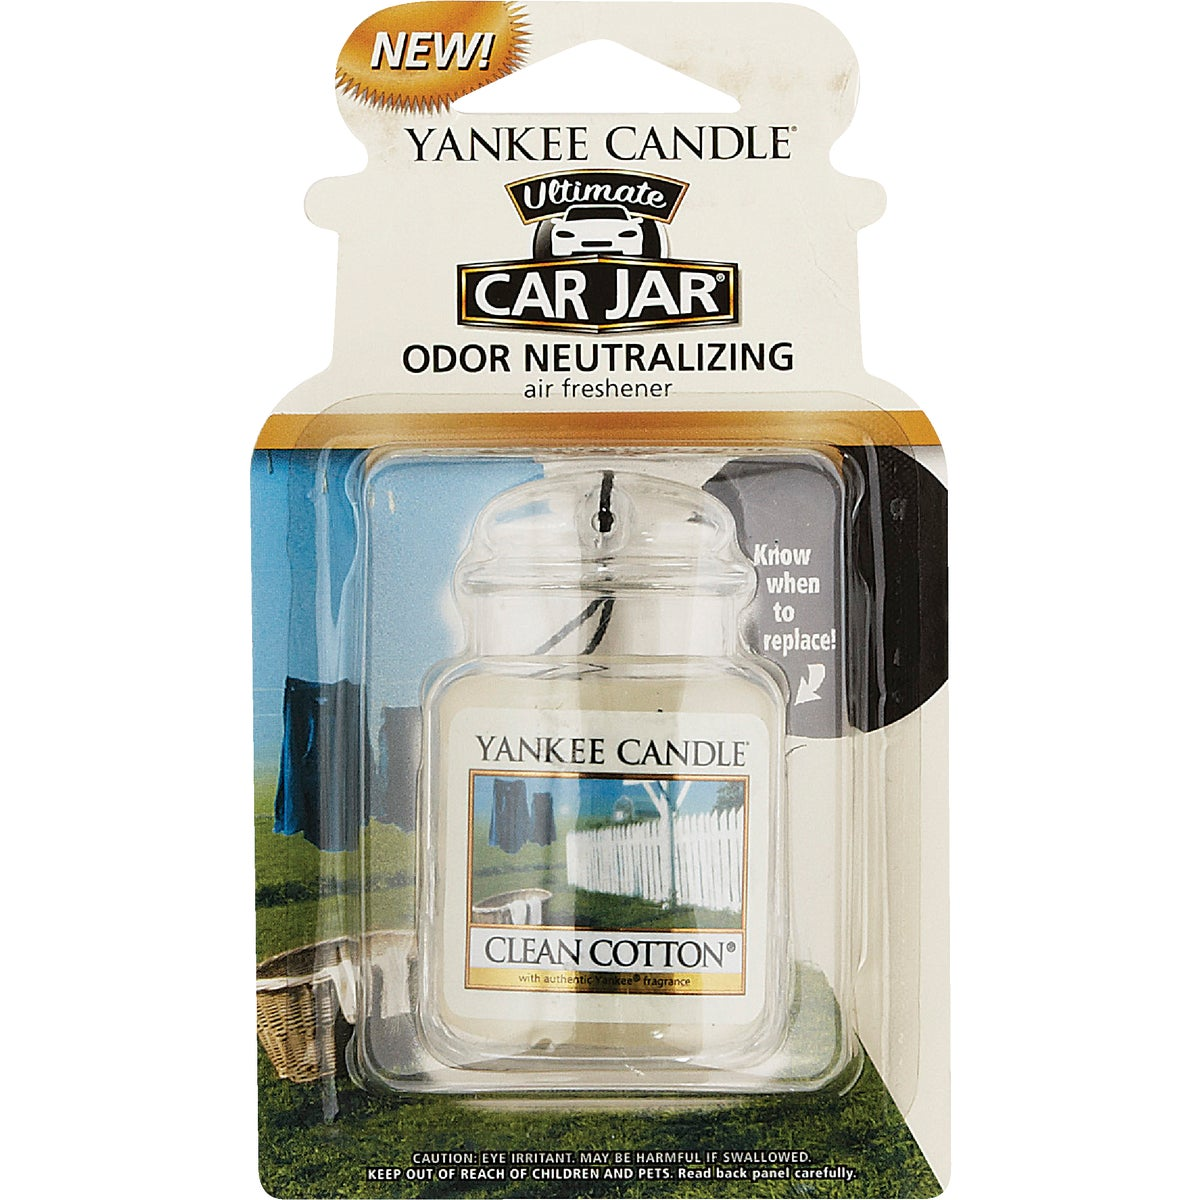 CLN COTTON CAR JAR ULTMT - 1220878 by Yankee Candle Co